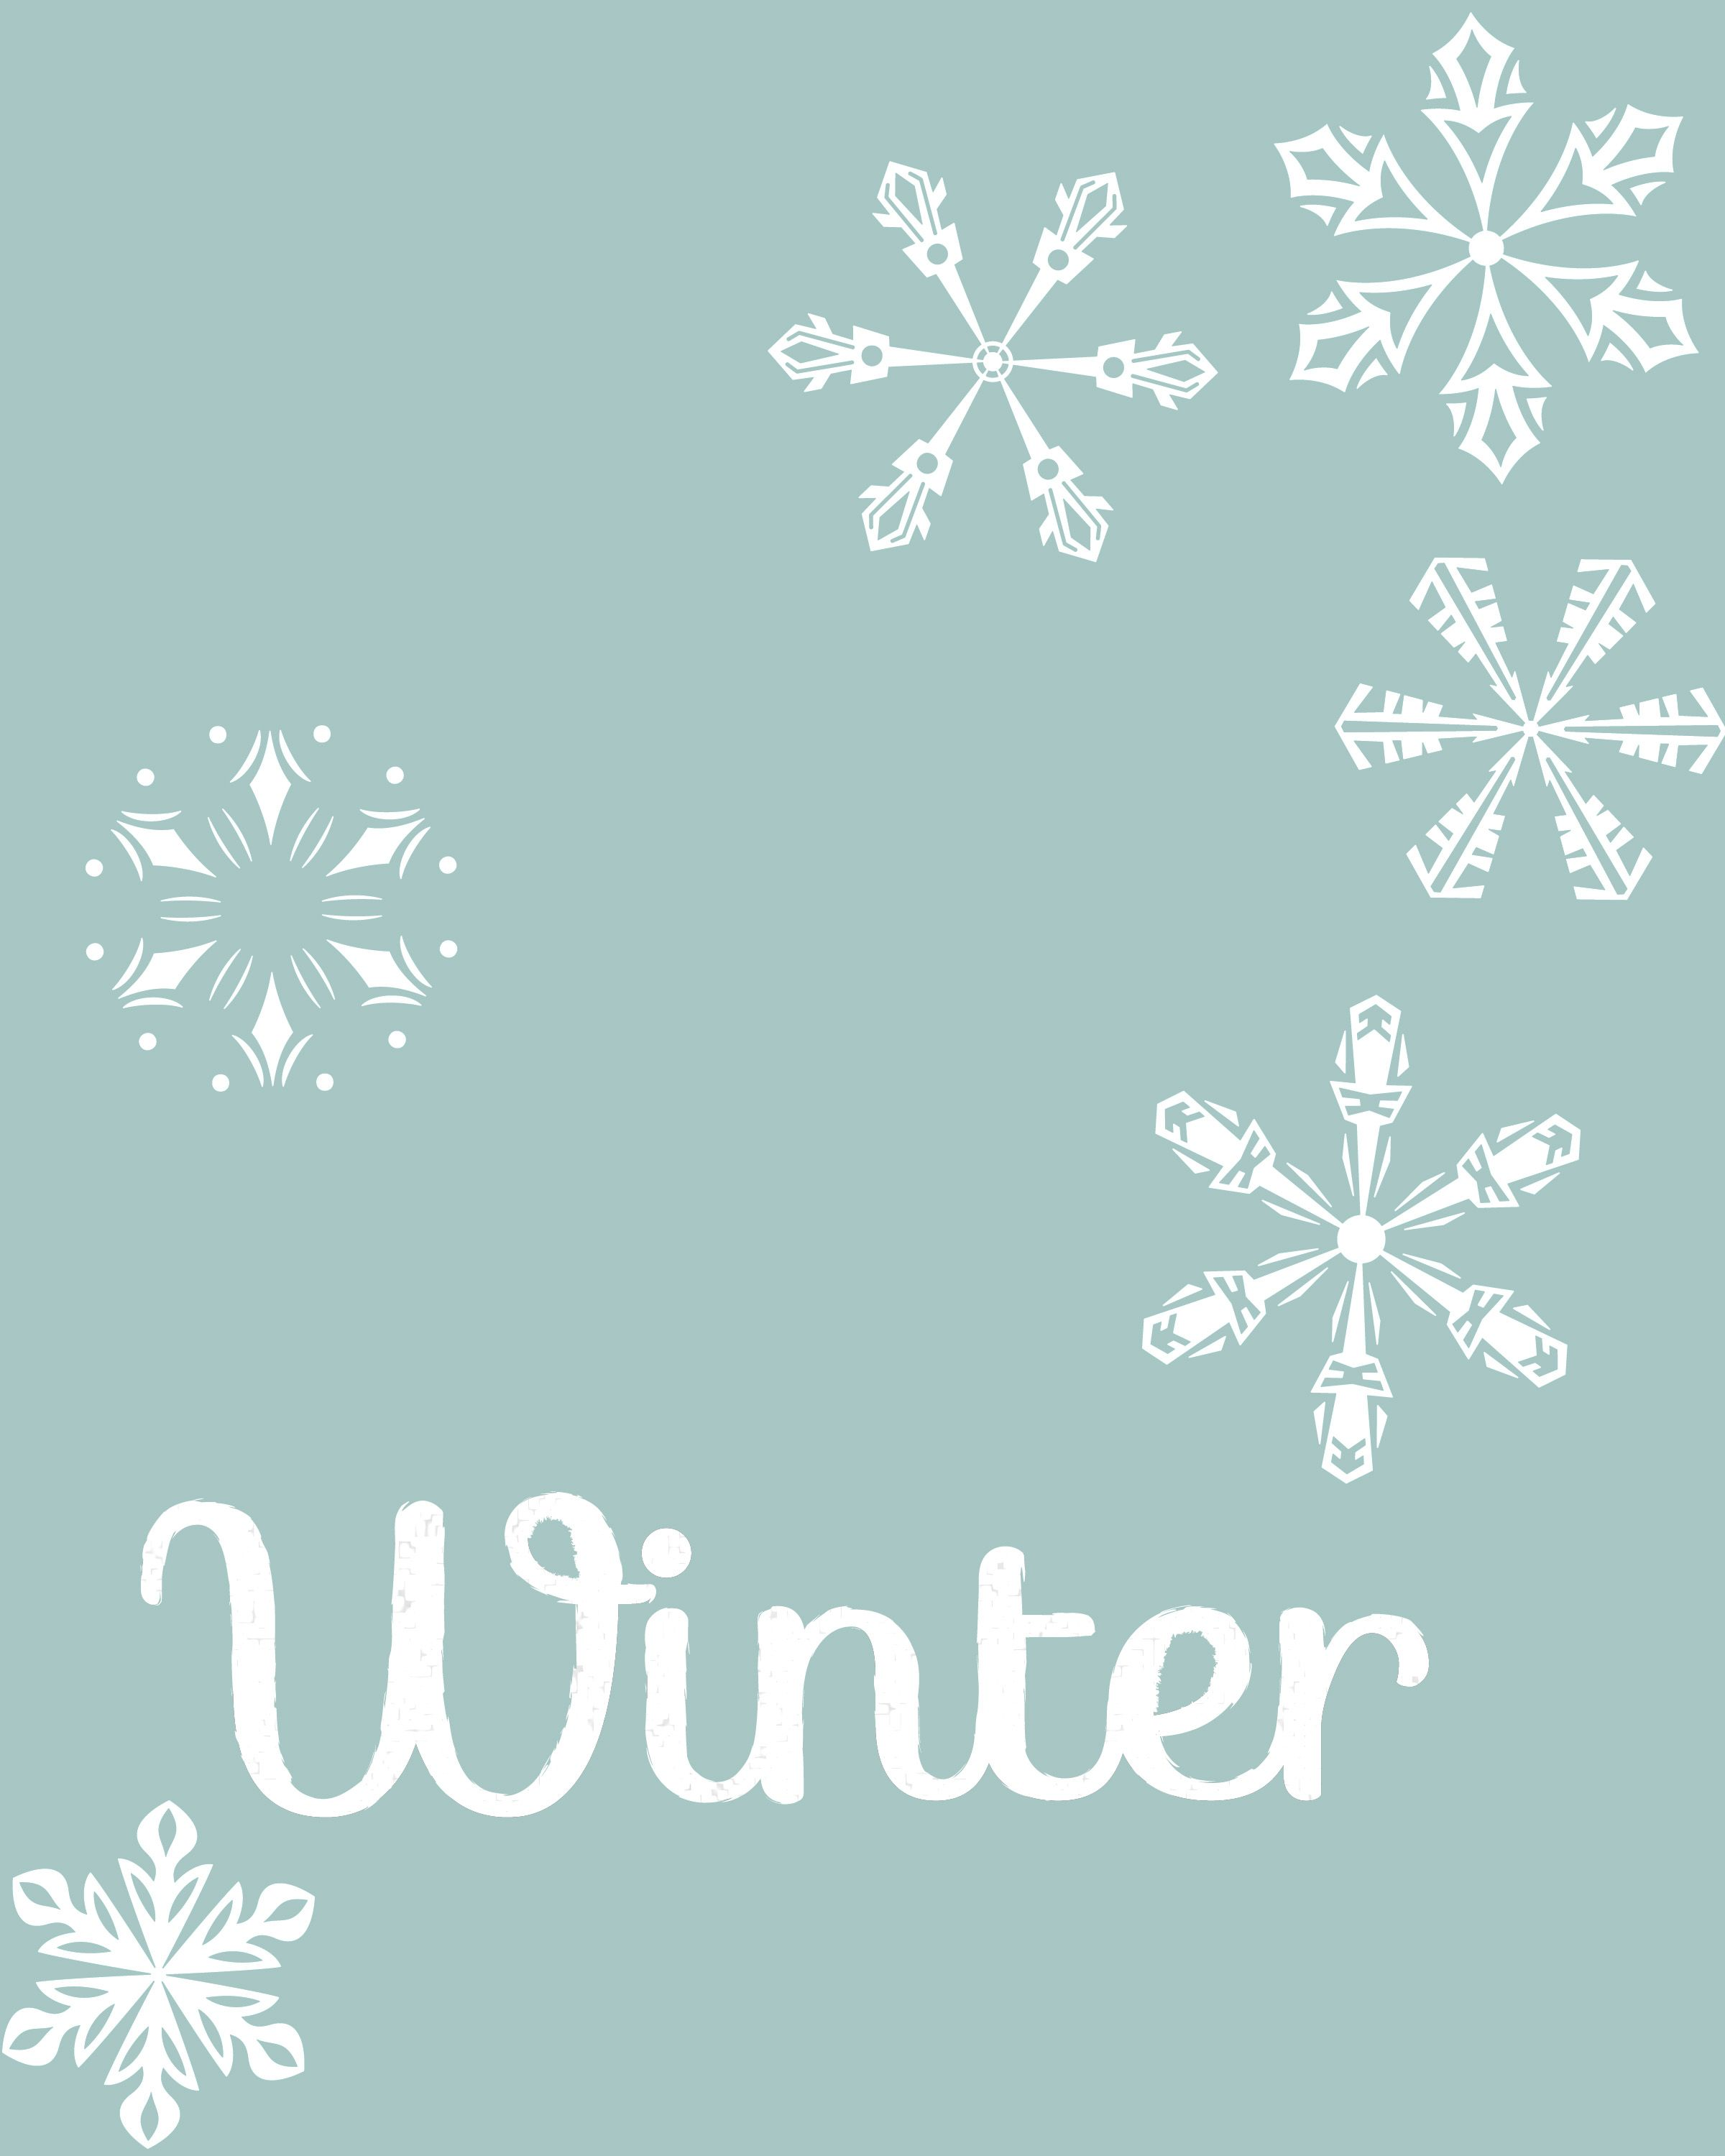 free printable winter snowflake bunting from over the big moon